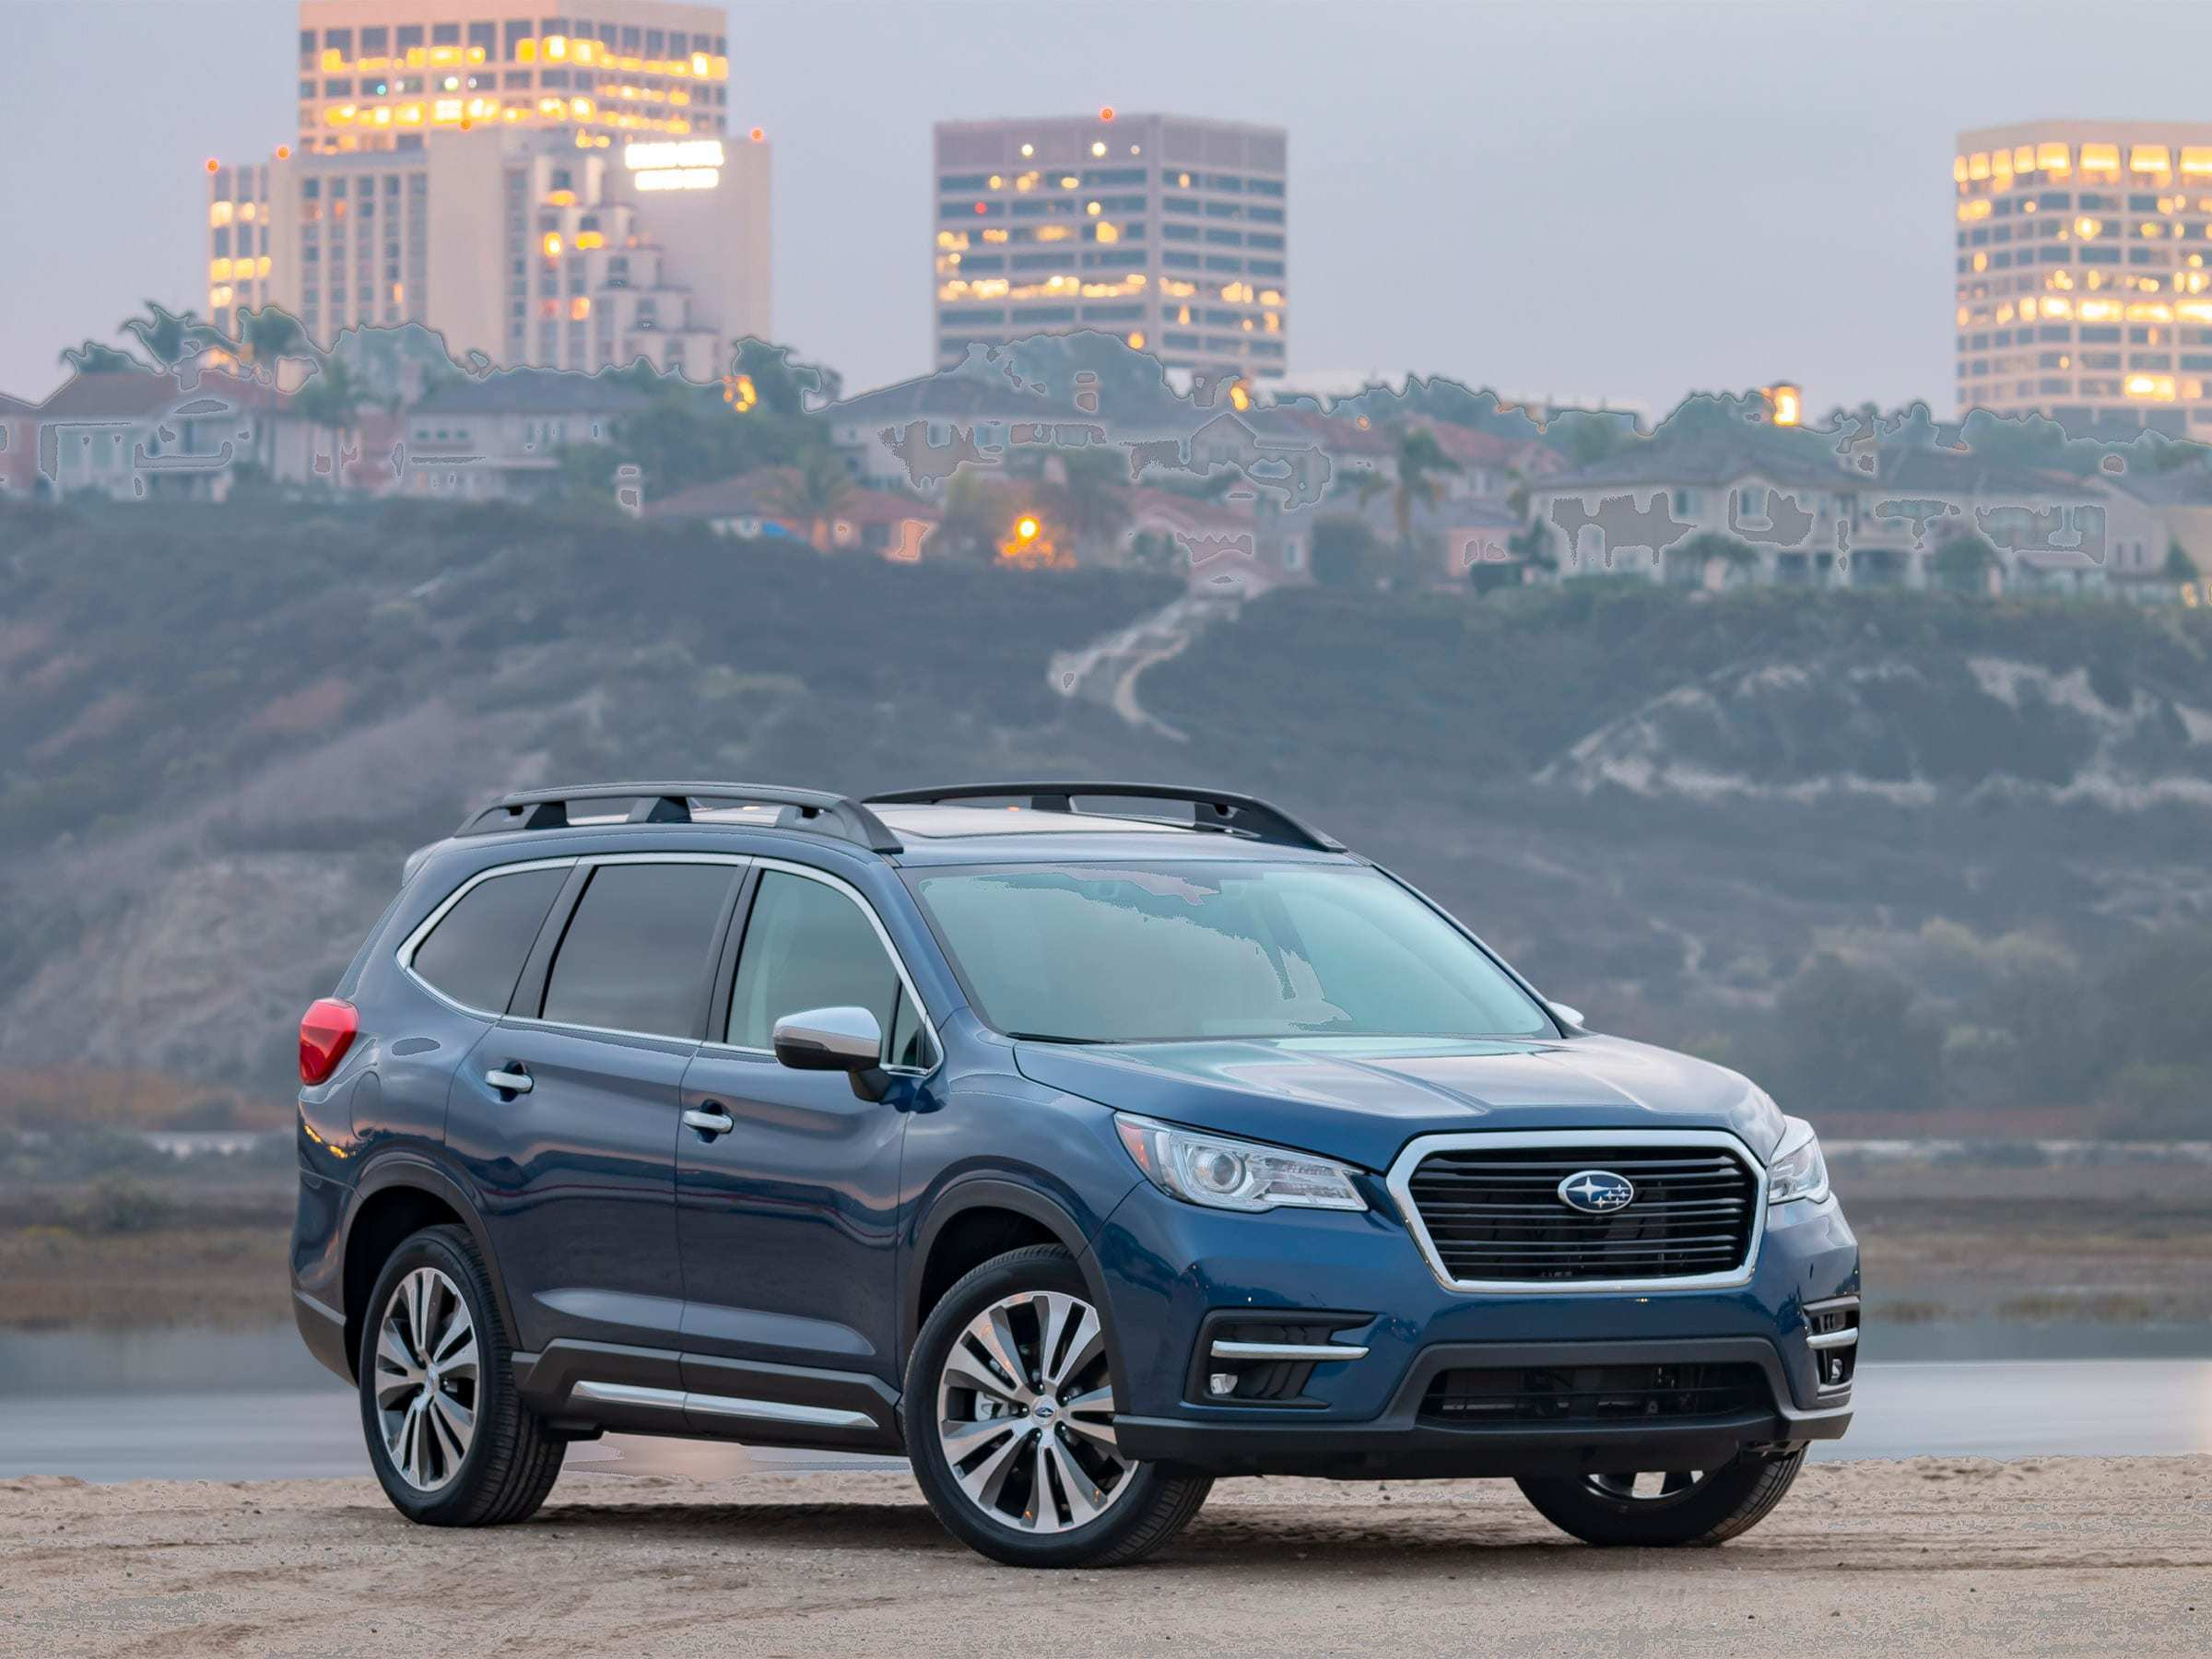 77 All New 2019 Subaru Ascent Price And Release Date